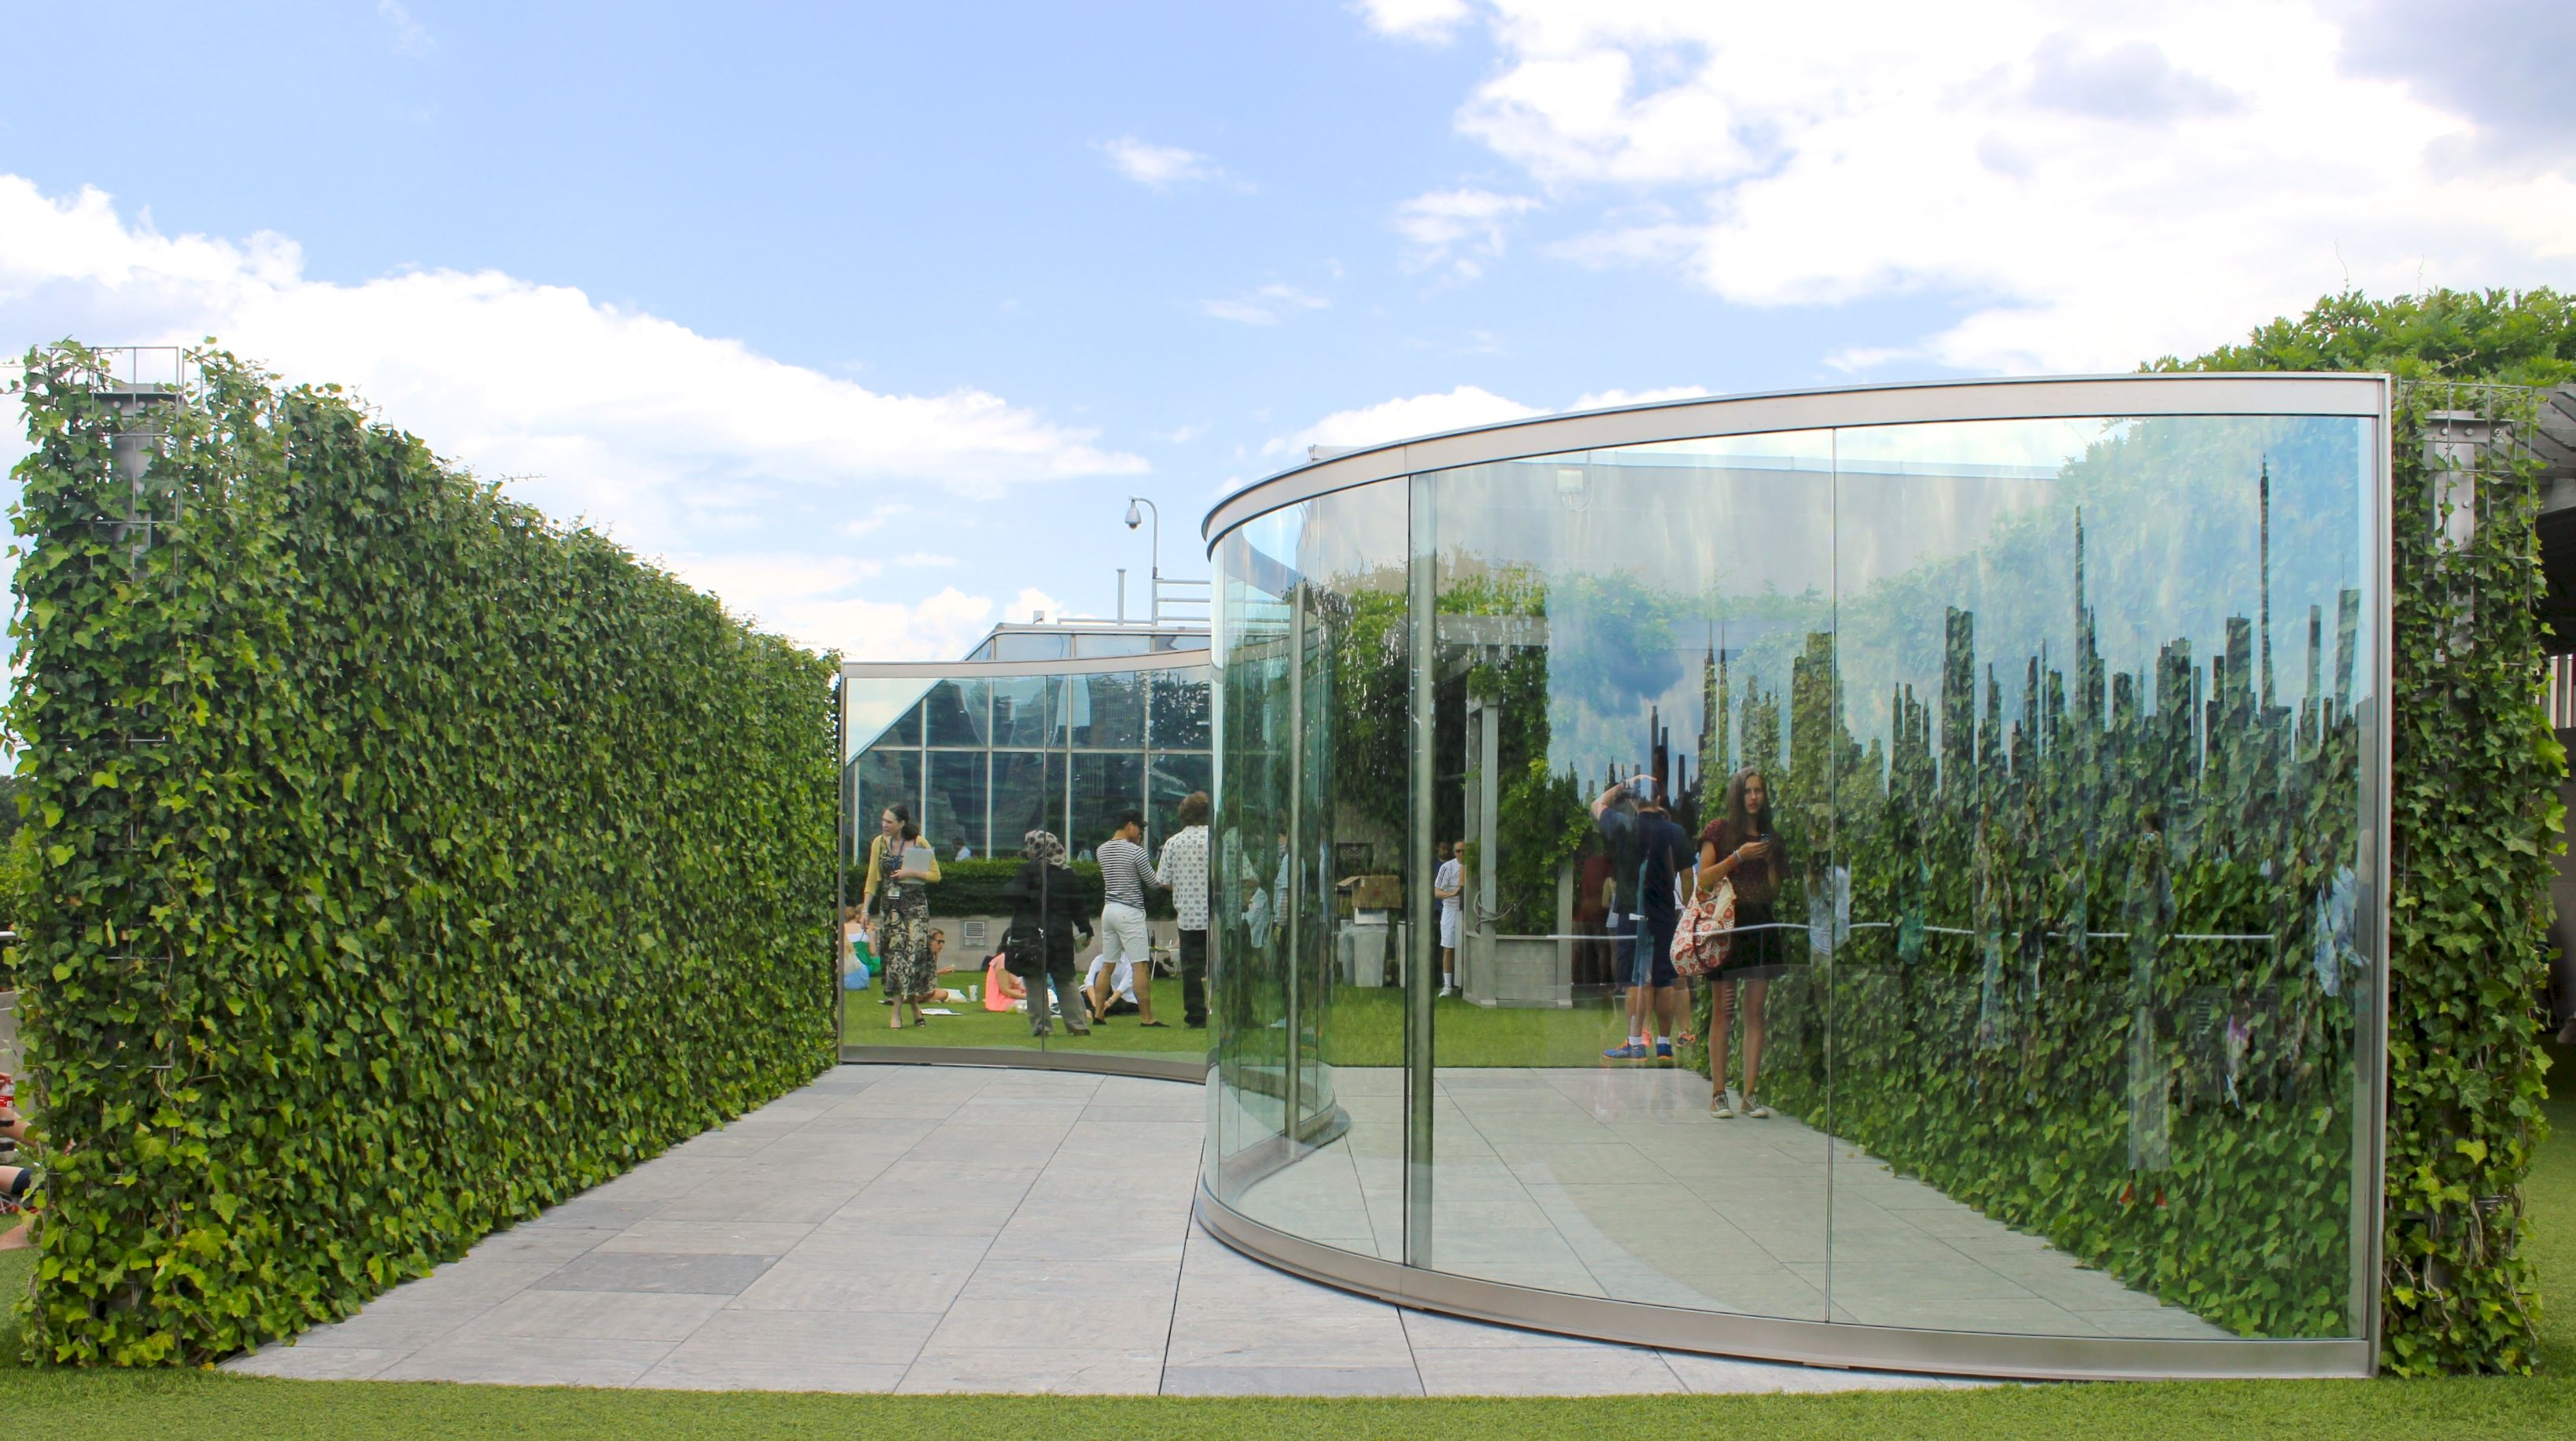 Roof Garden Metropolitan Museum Of Art Part - 28: Dan Graham, Hedge Two-Way Mirror Walkabout (2014), All Images Via